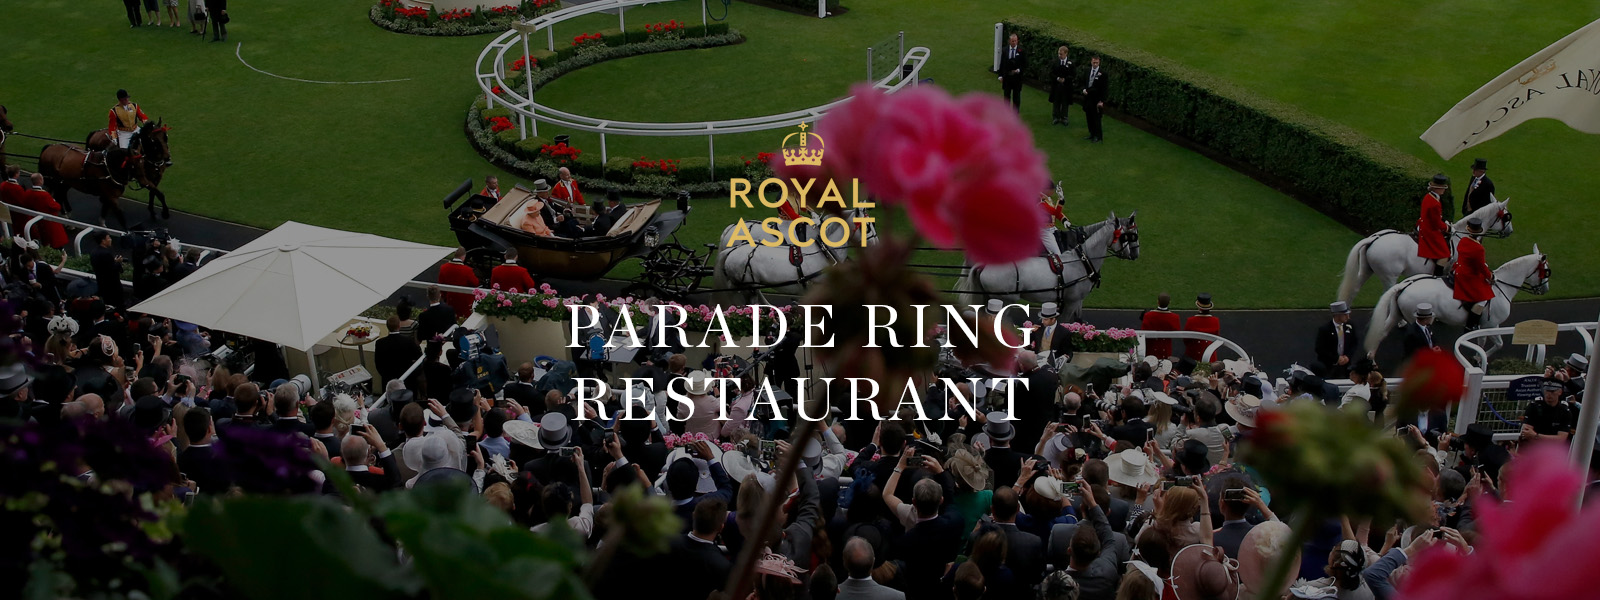 Parade Ring Restaurant Hospitality package